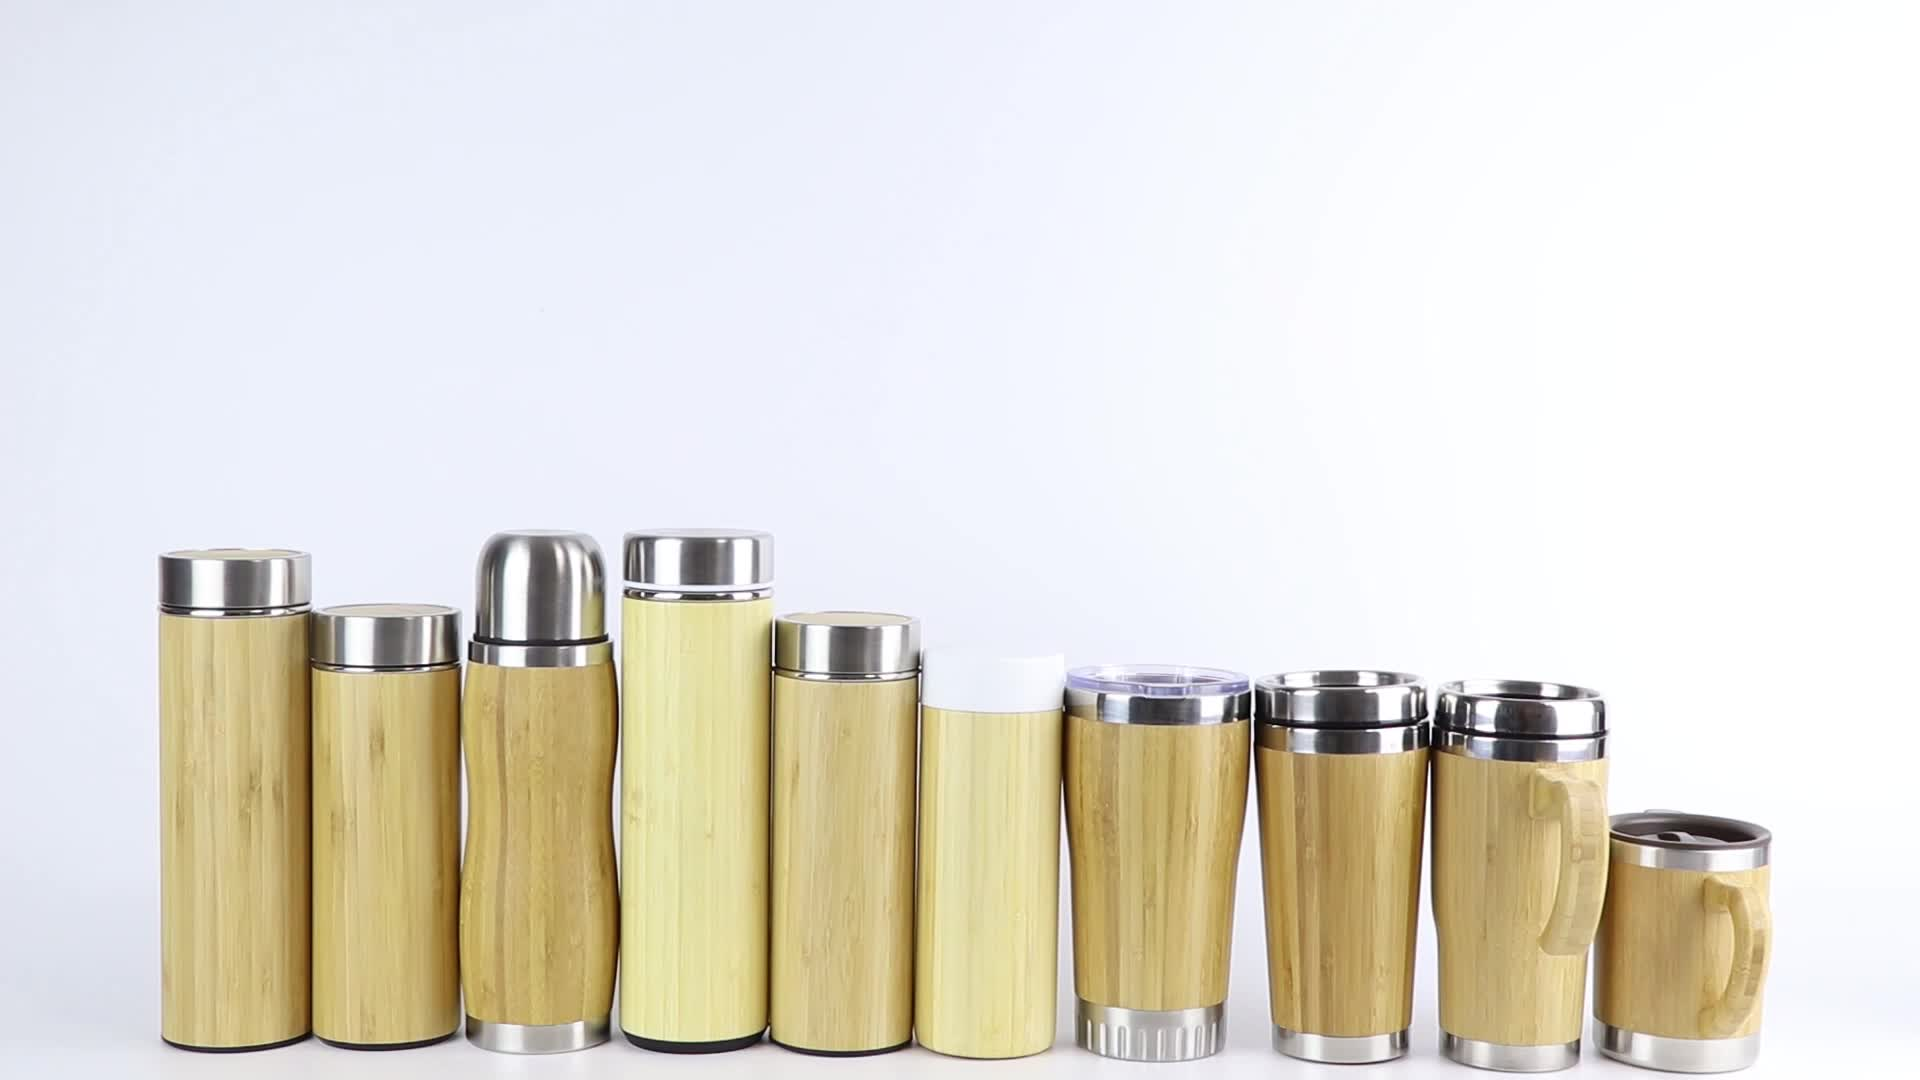 450ml 530ml Double Wall Vacuum Insulated Bamboo Travel Tumbler with Mesh Filter for Loose Leaf Detox Brew and Fruit Infusions